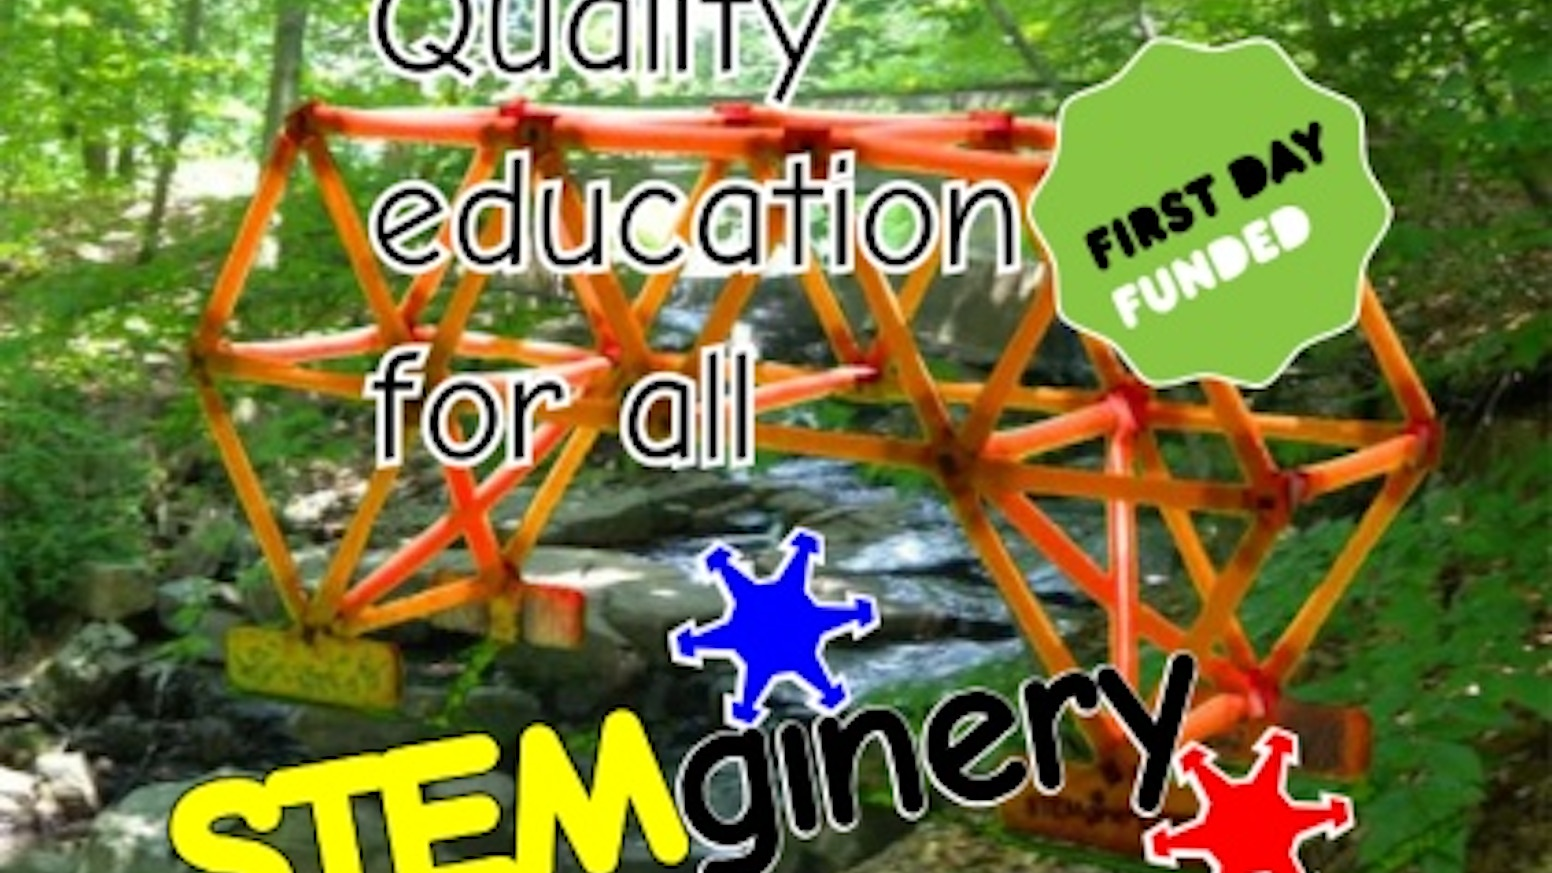 STEMginery - build, learn, play, make - straws & connectors by